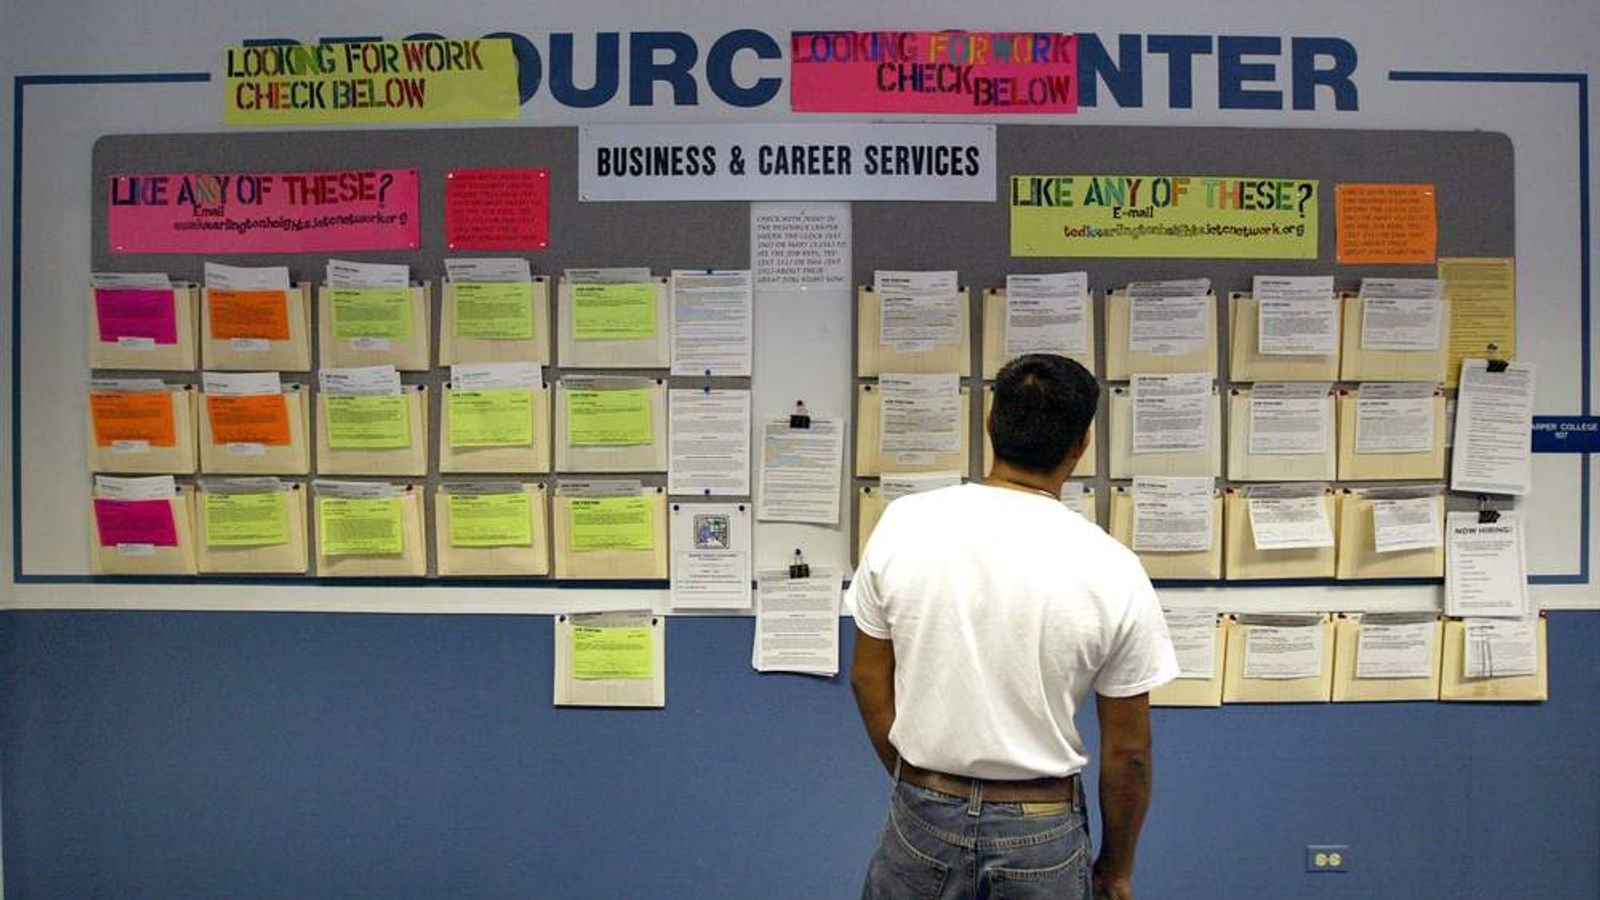 A job seeker searches for employment opportunities at an Illinois Employment and Training Centre